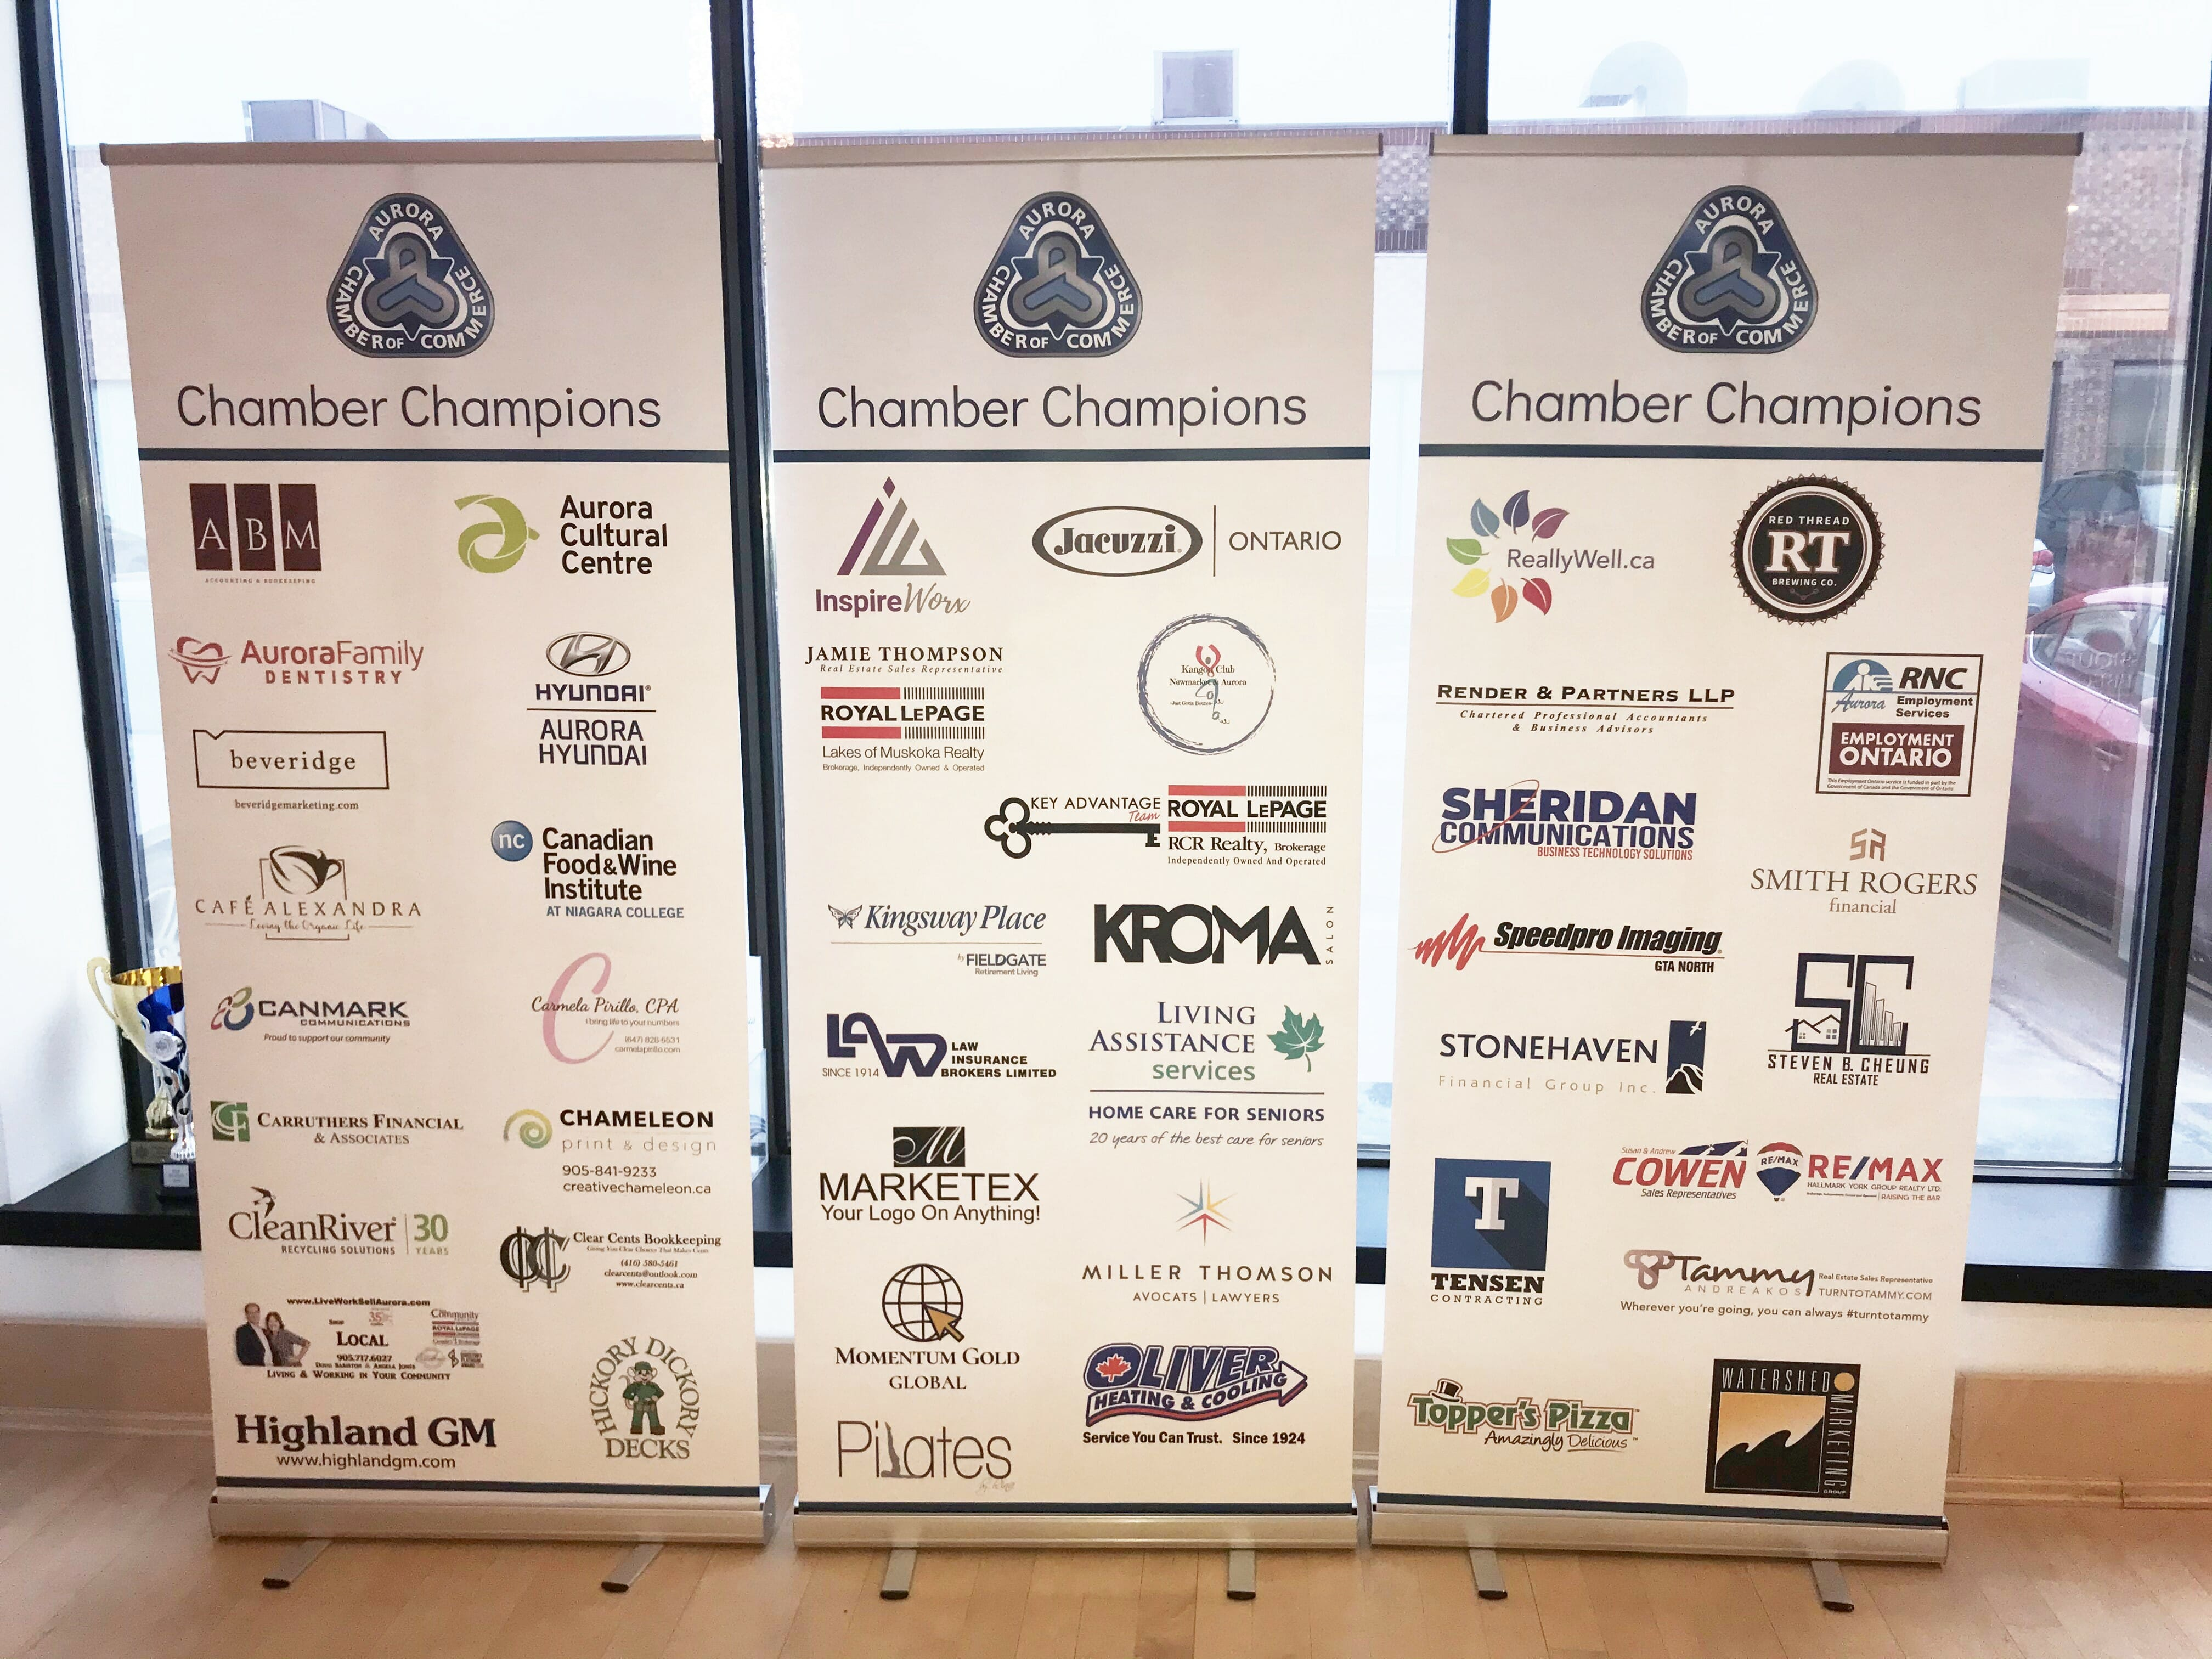 2020 Chamber Champions Banners (1)